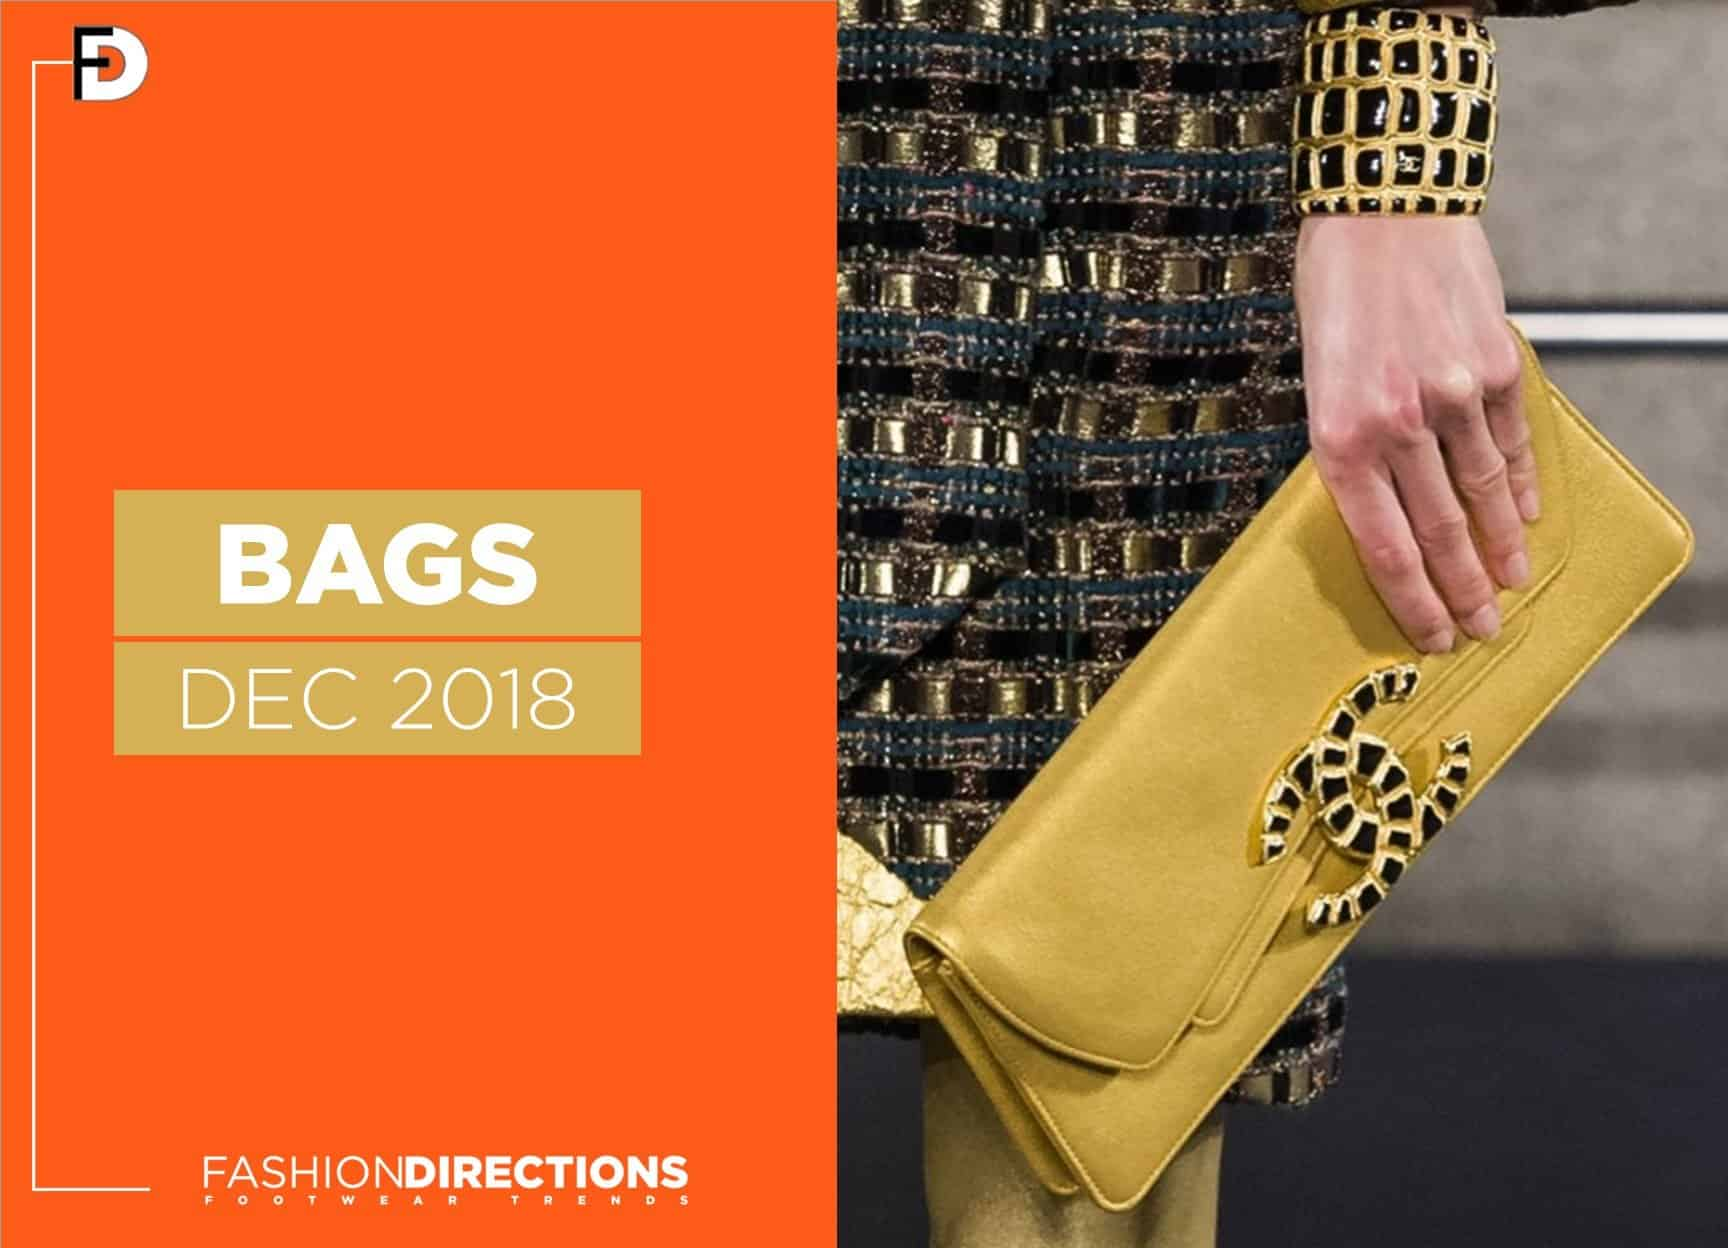 retail bags december 2018 images